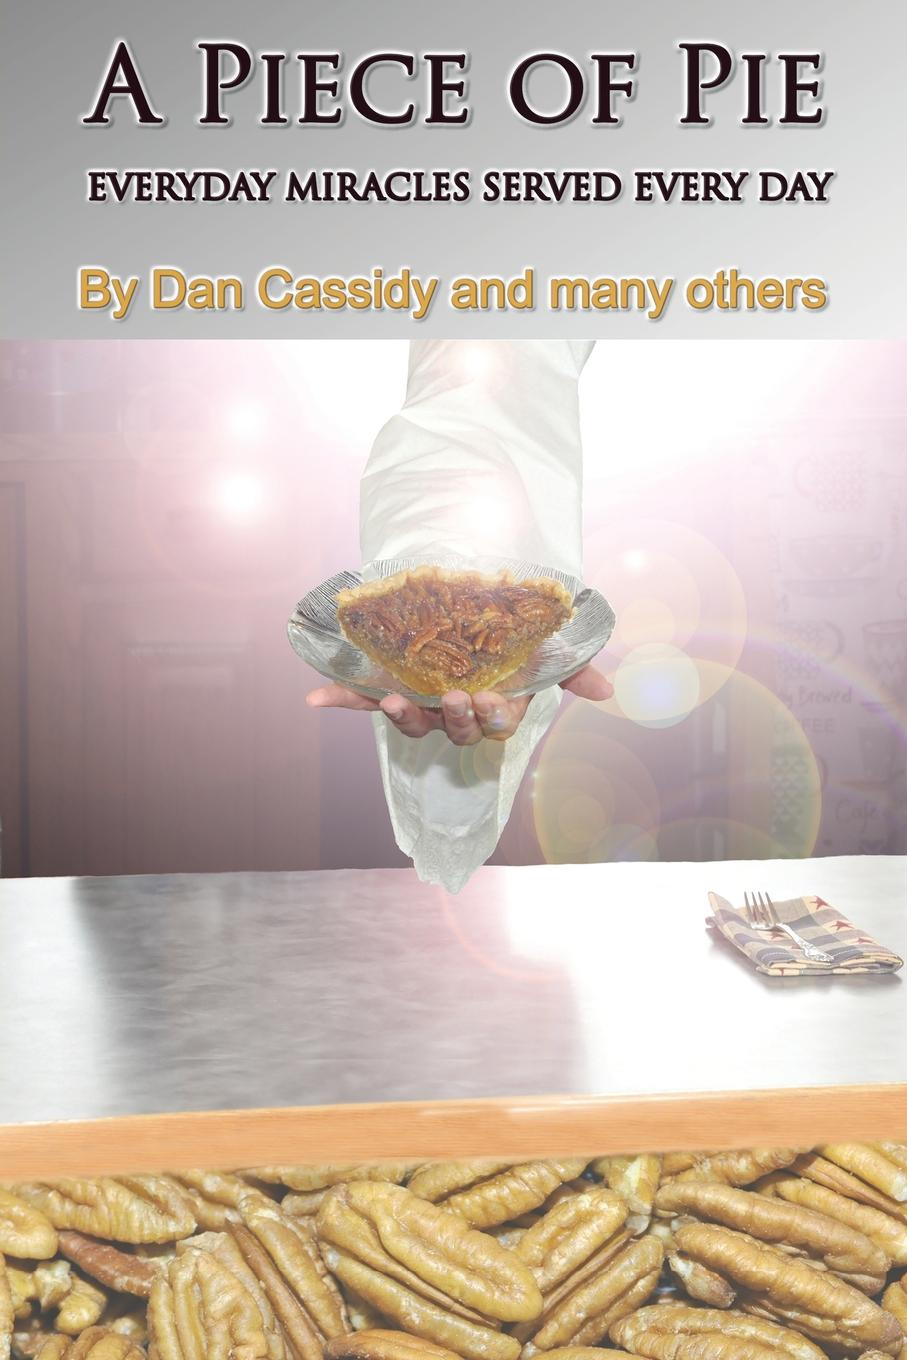 Daniel Cassidy A Piece of Pie. Everyday Miracles Served Every Day olukayode oyediran he leadeth me autobiographical testimonies of olukayode oyediran